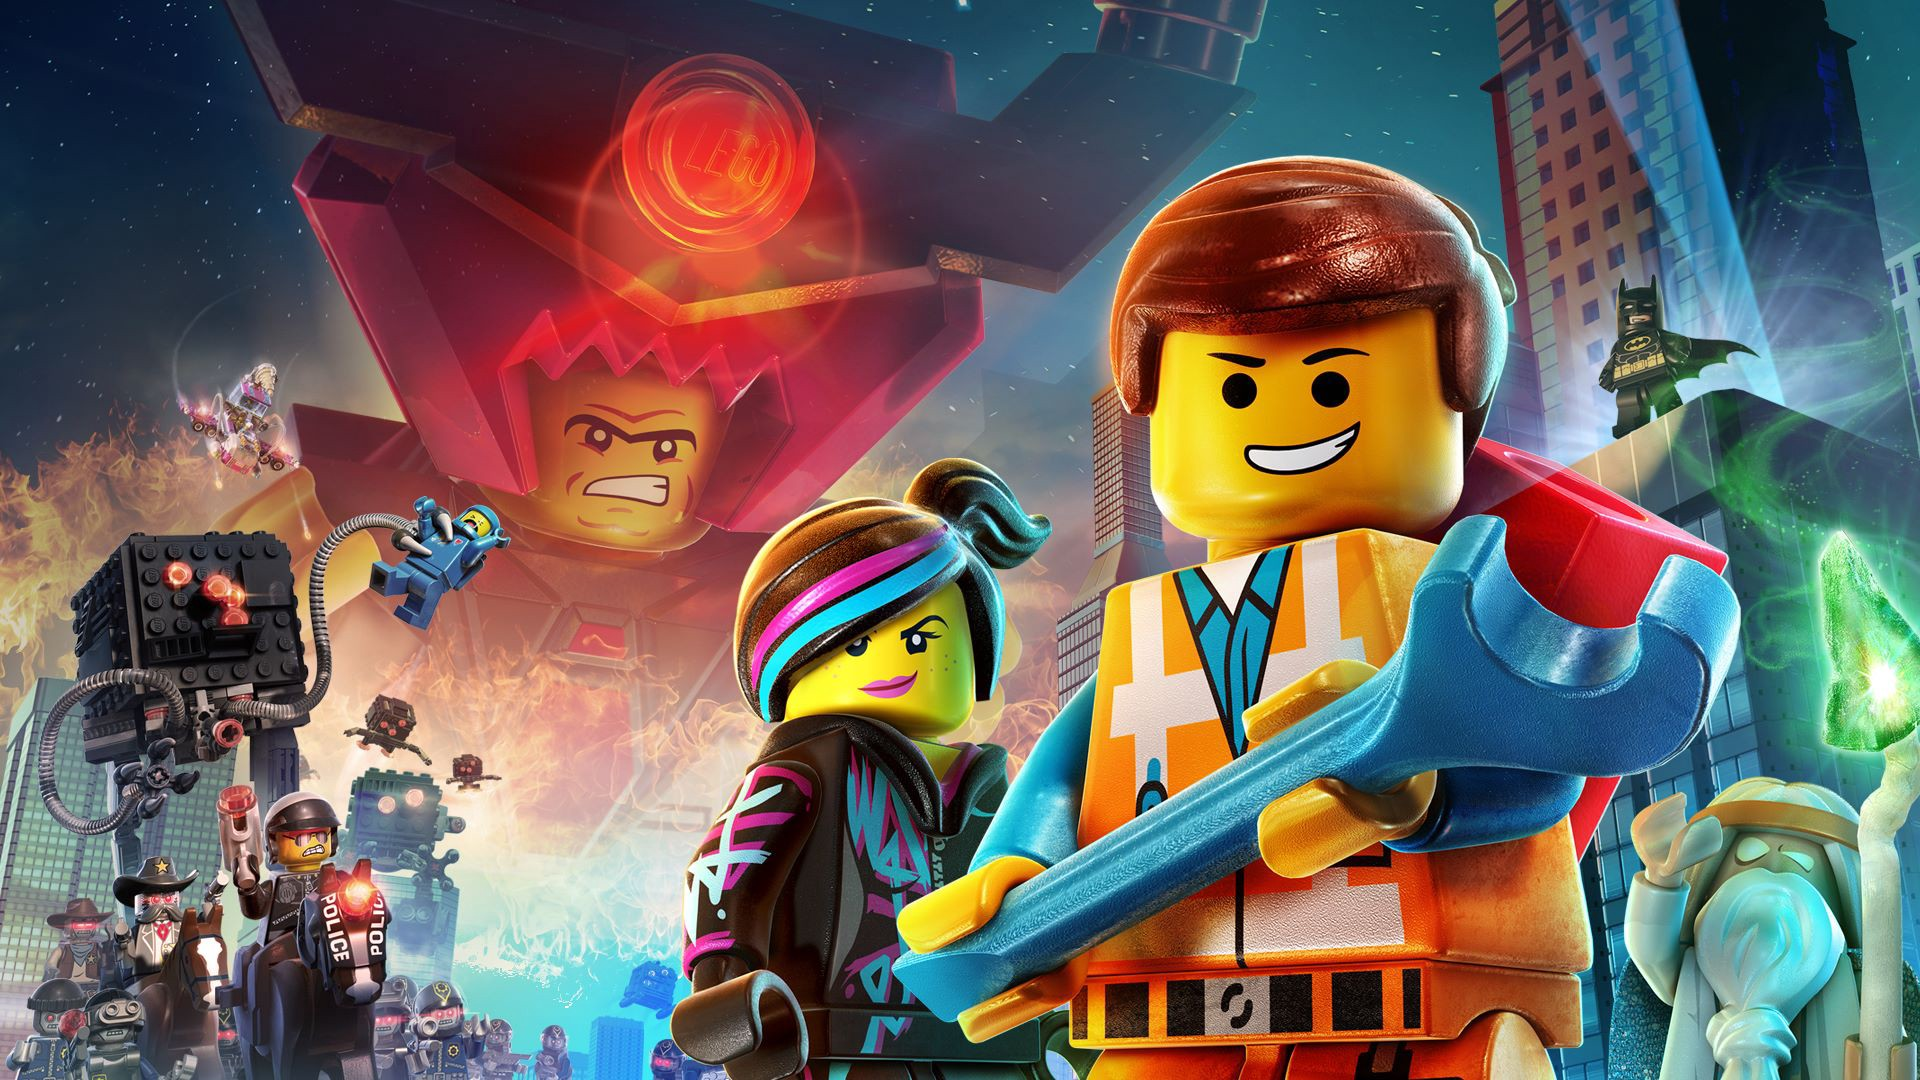 The Essential Games The Lego Movie Videogame 2014 By Alex Rowe Medium